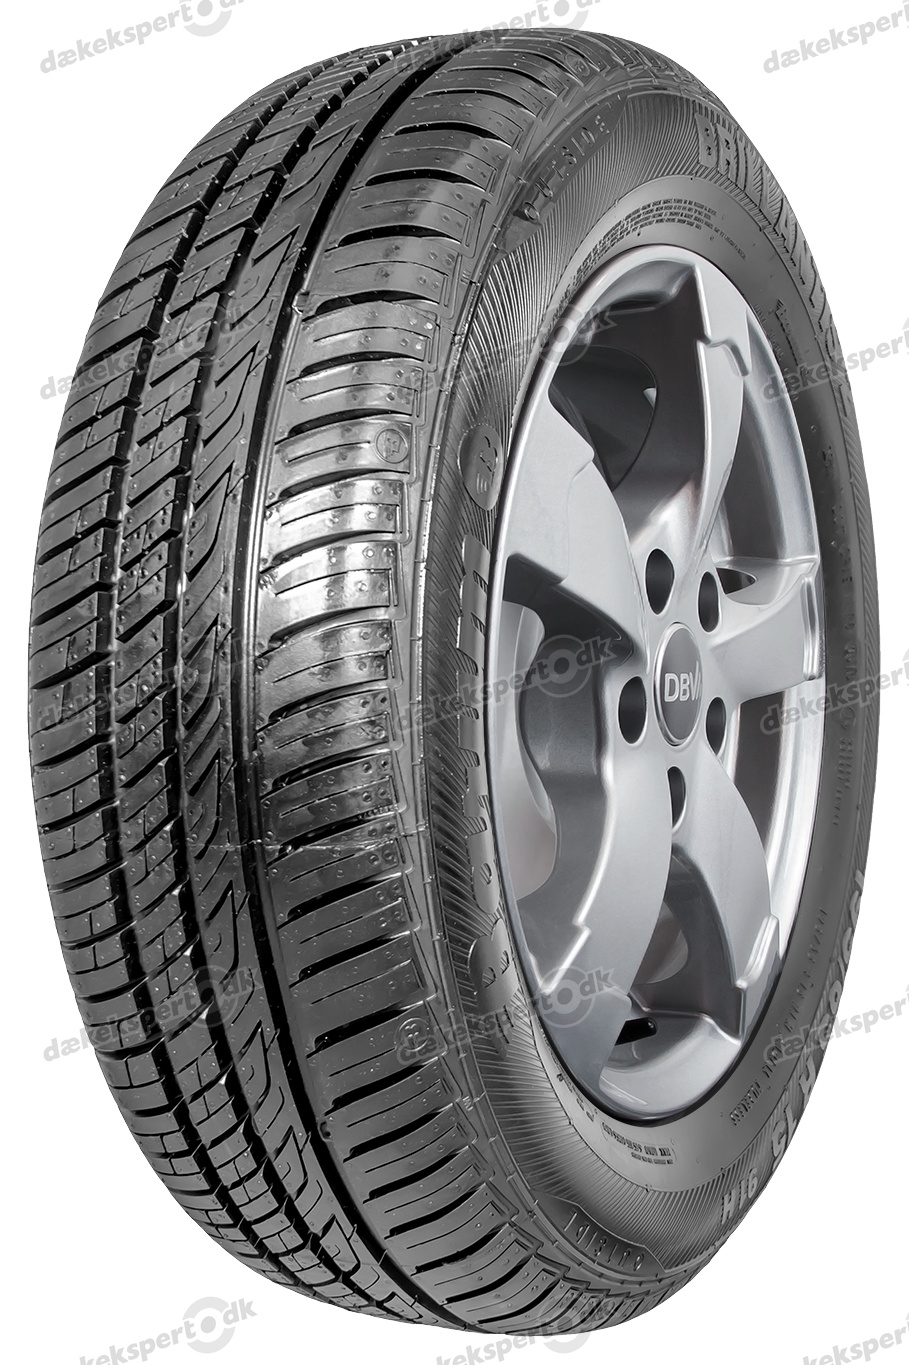 185/60 R15 88H Brillantis 2 XL  Brillantis 2 XL